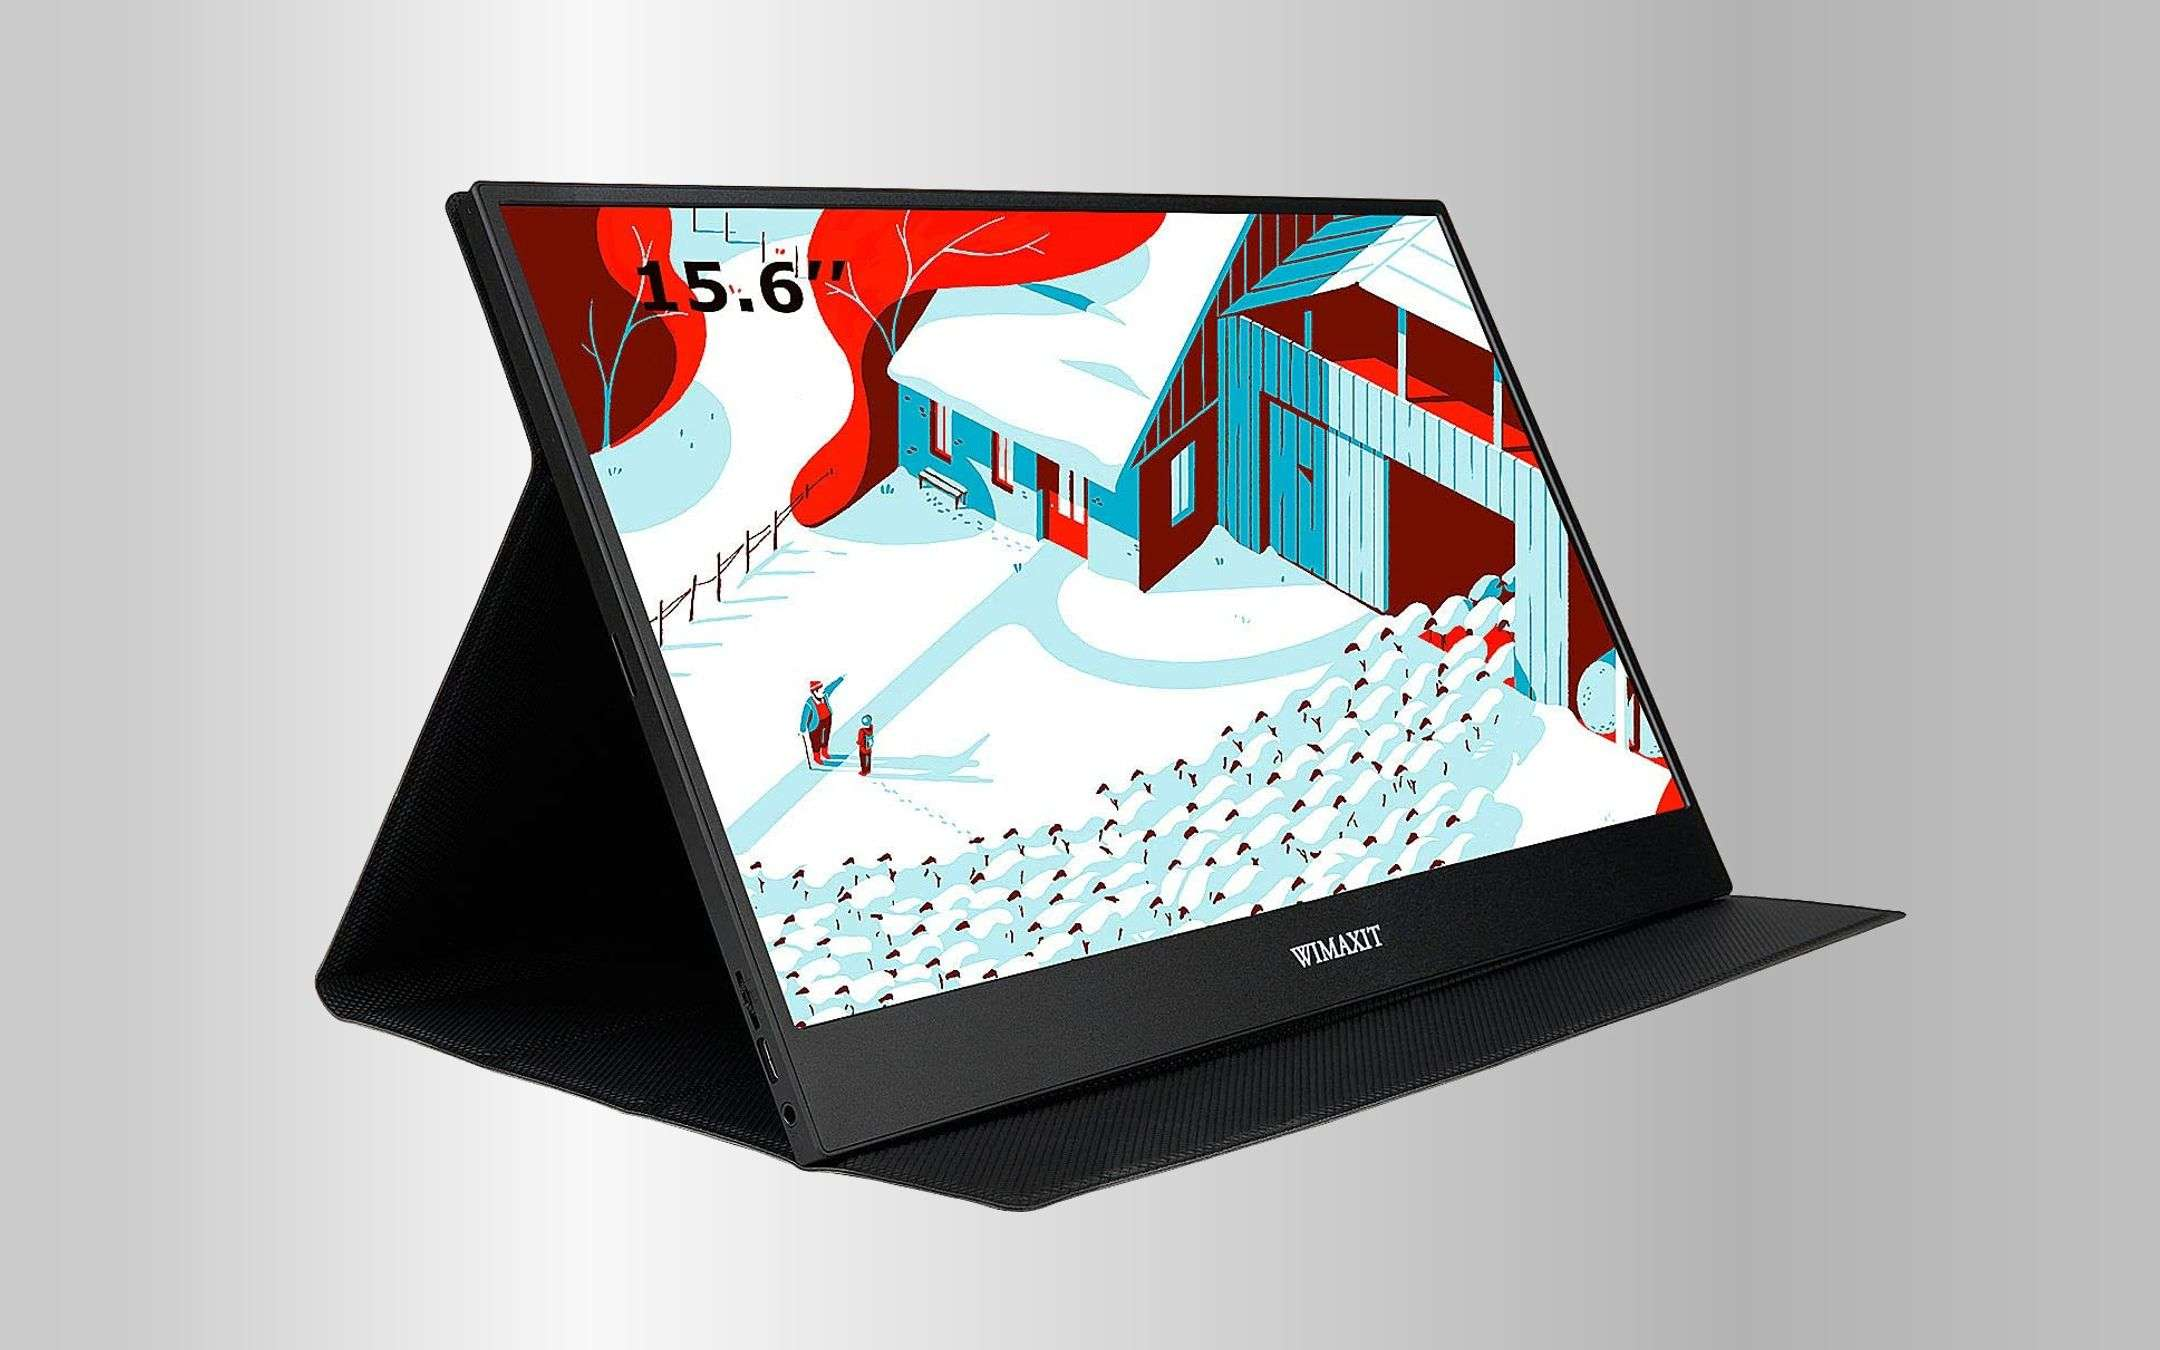 Portable monitor on sale: why get one?